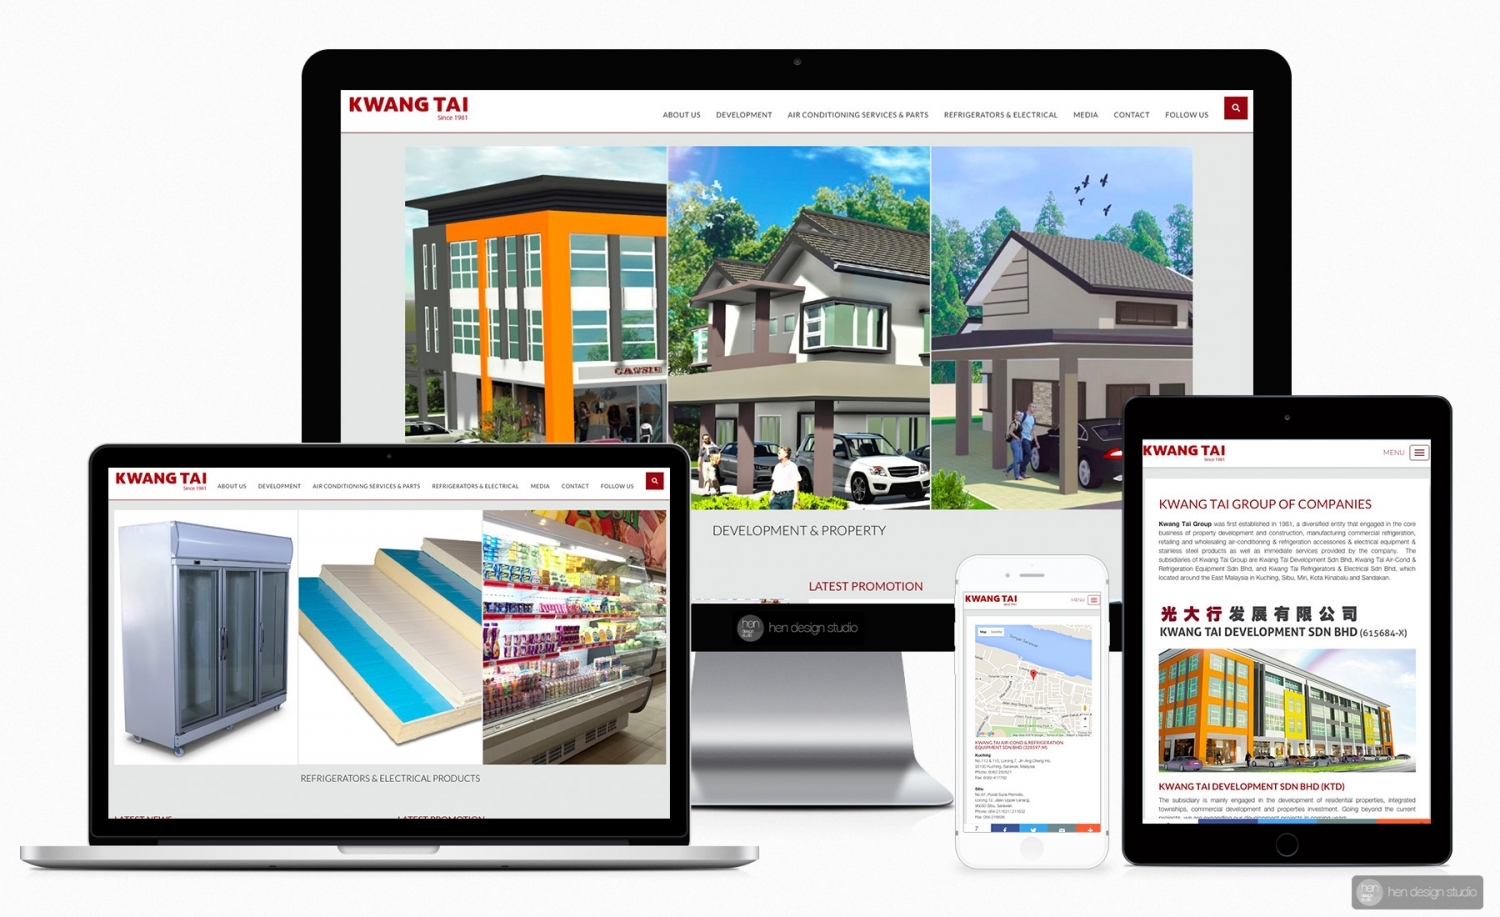 Kwang Tai Group of Companies official website design and setup